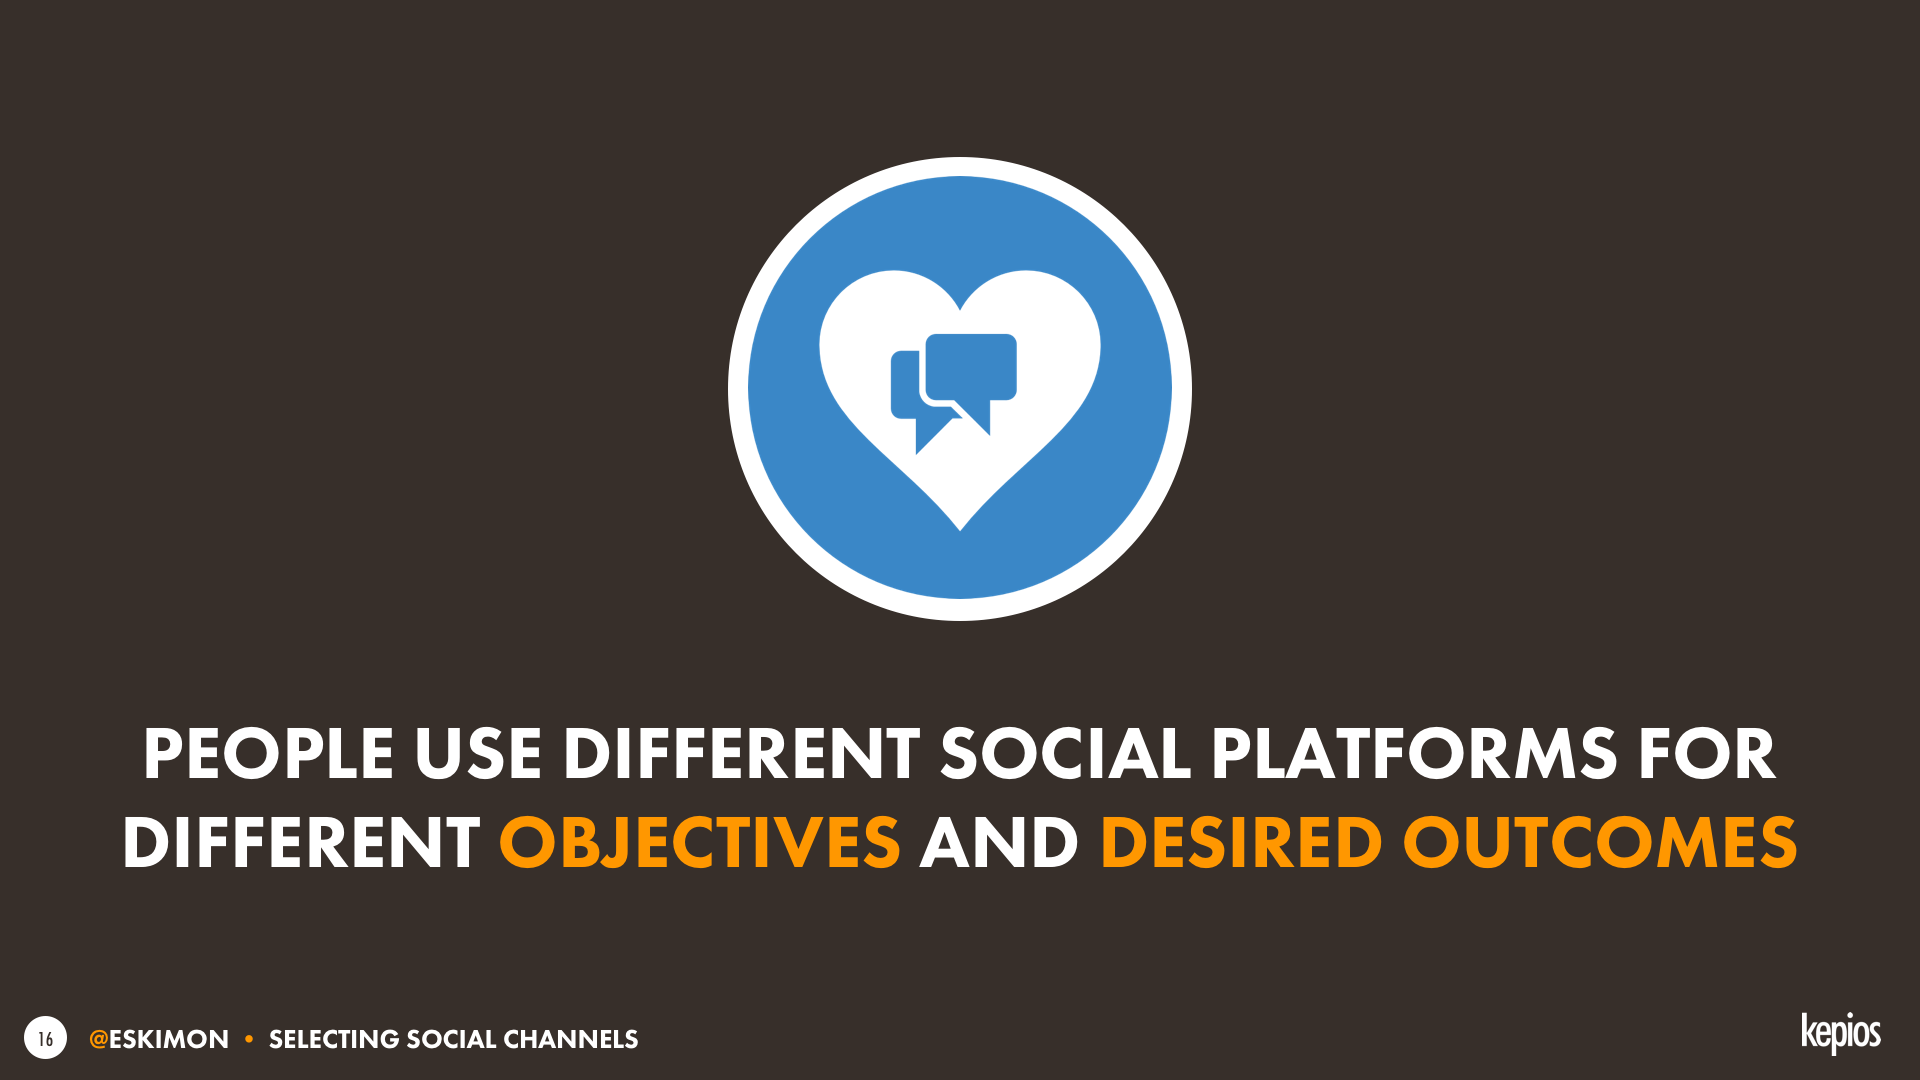 Usage motivations in social